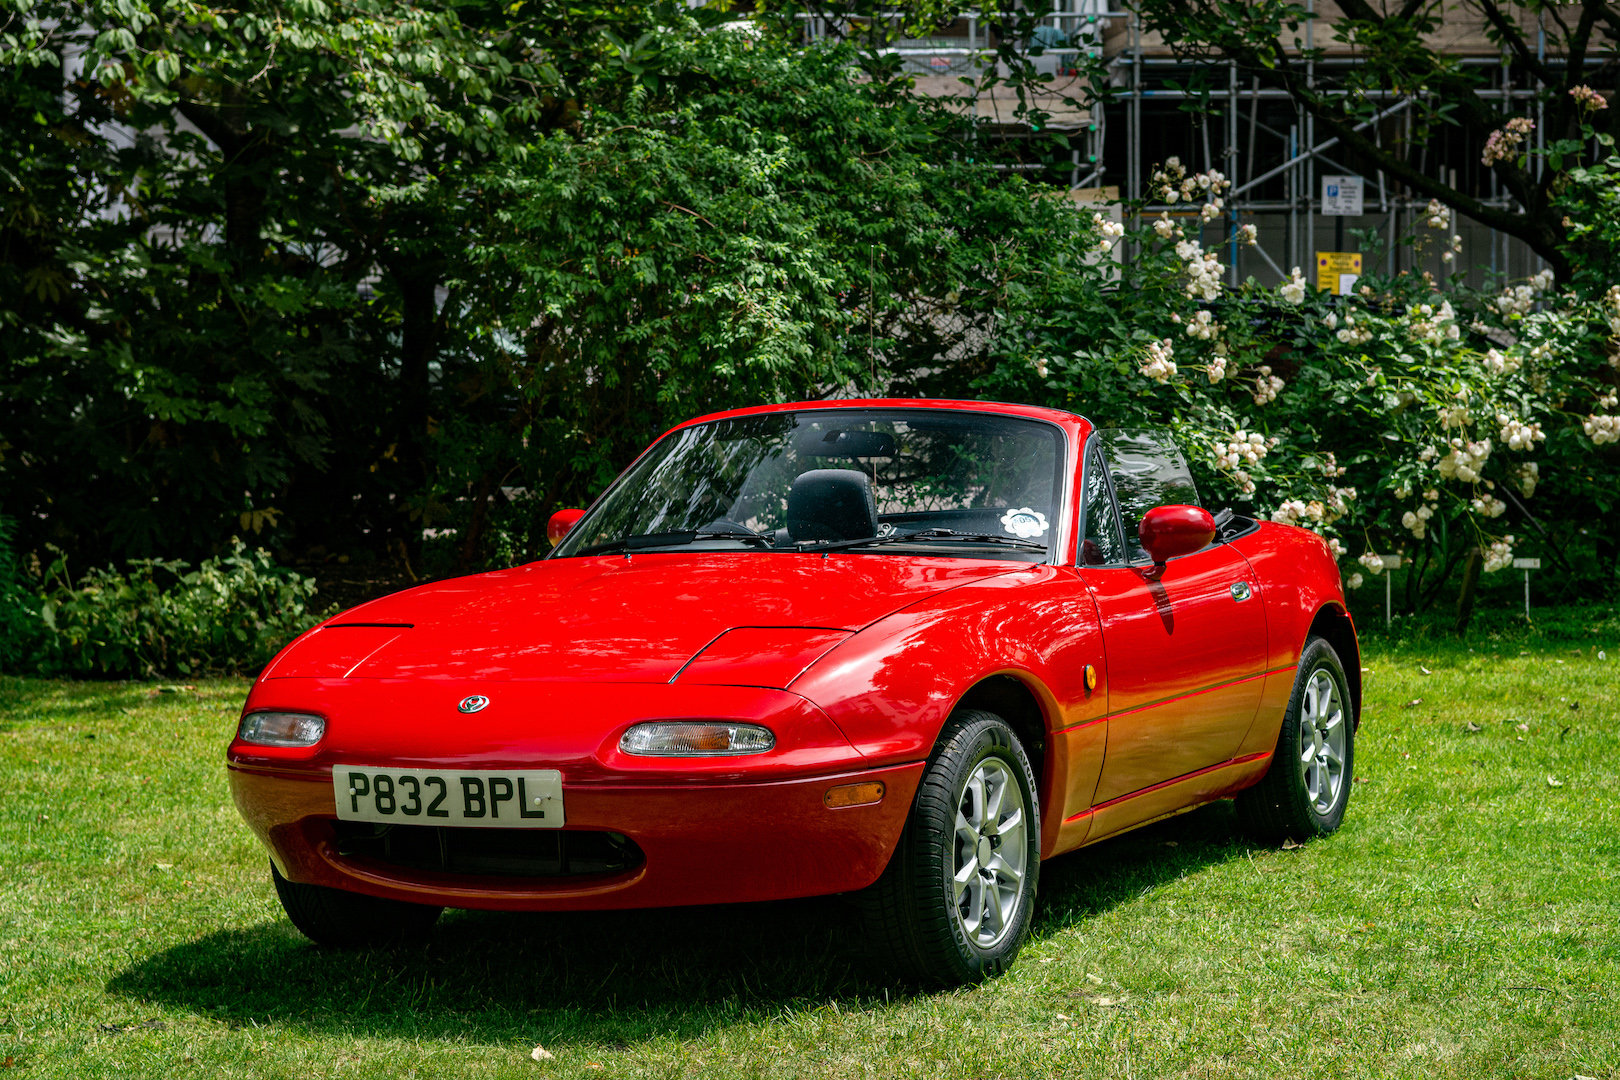 1996 Newly-restored Mazda MX5 Mk 1, low mileage for age For Sale (picture 1 of 6)